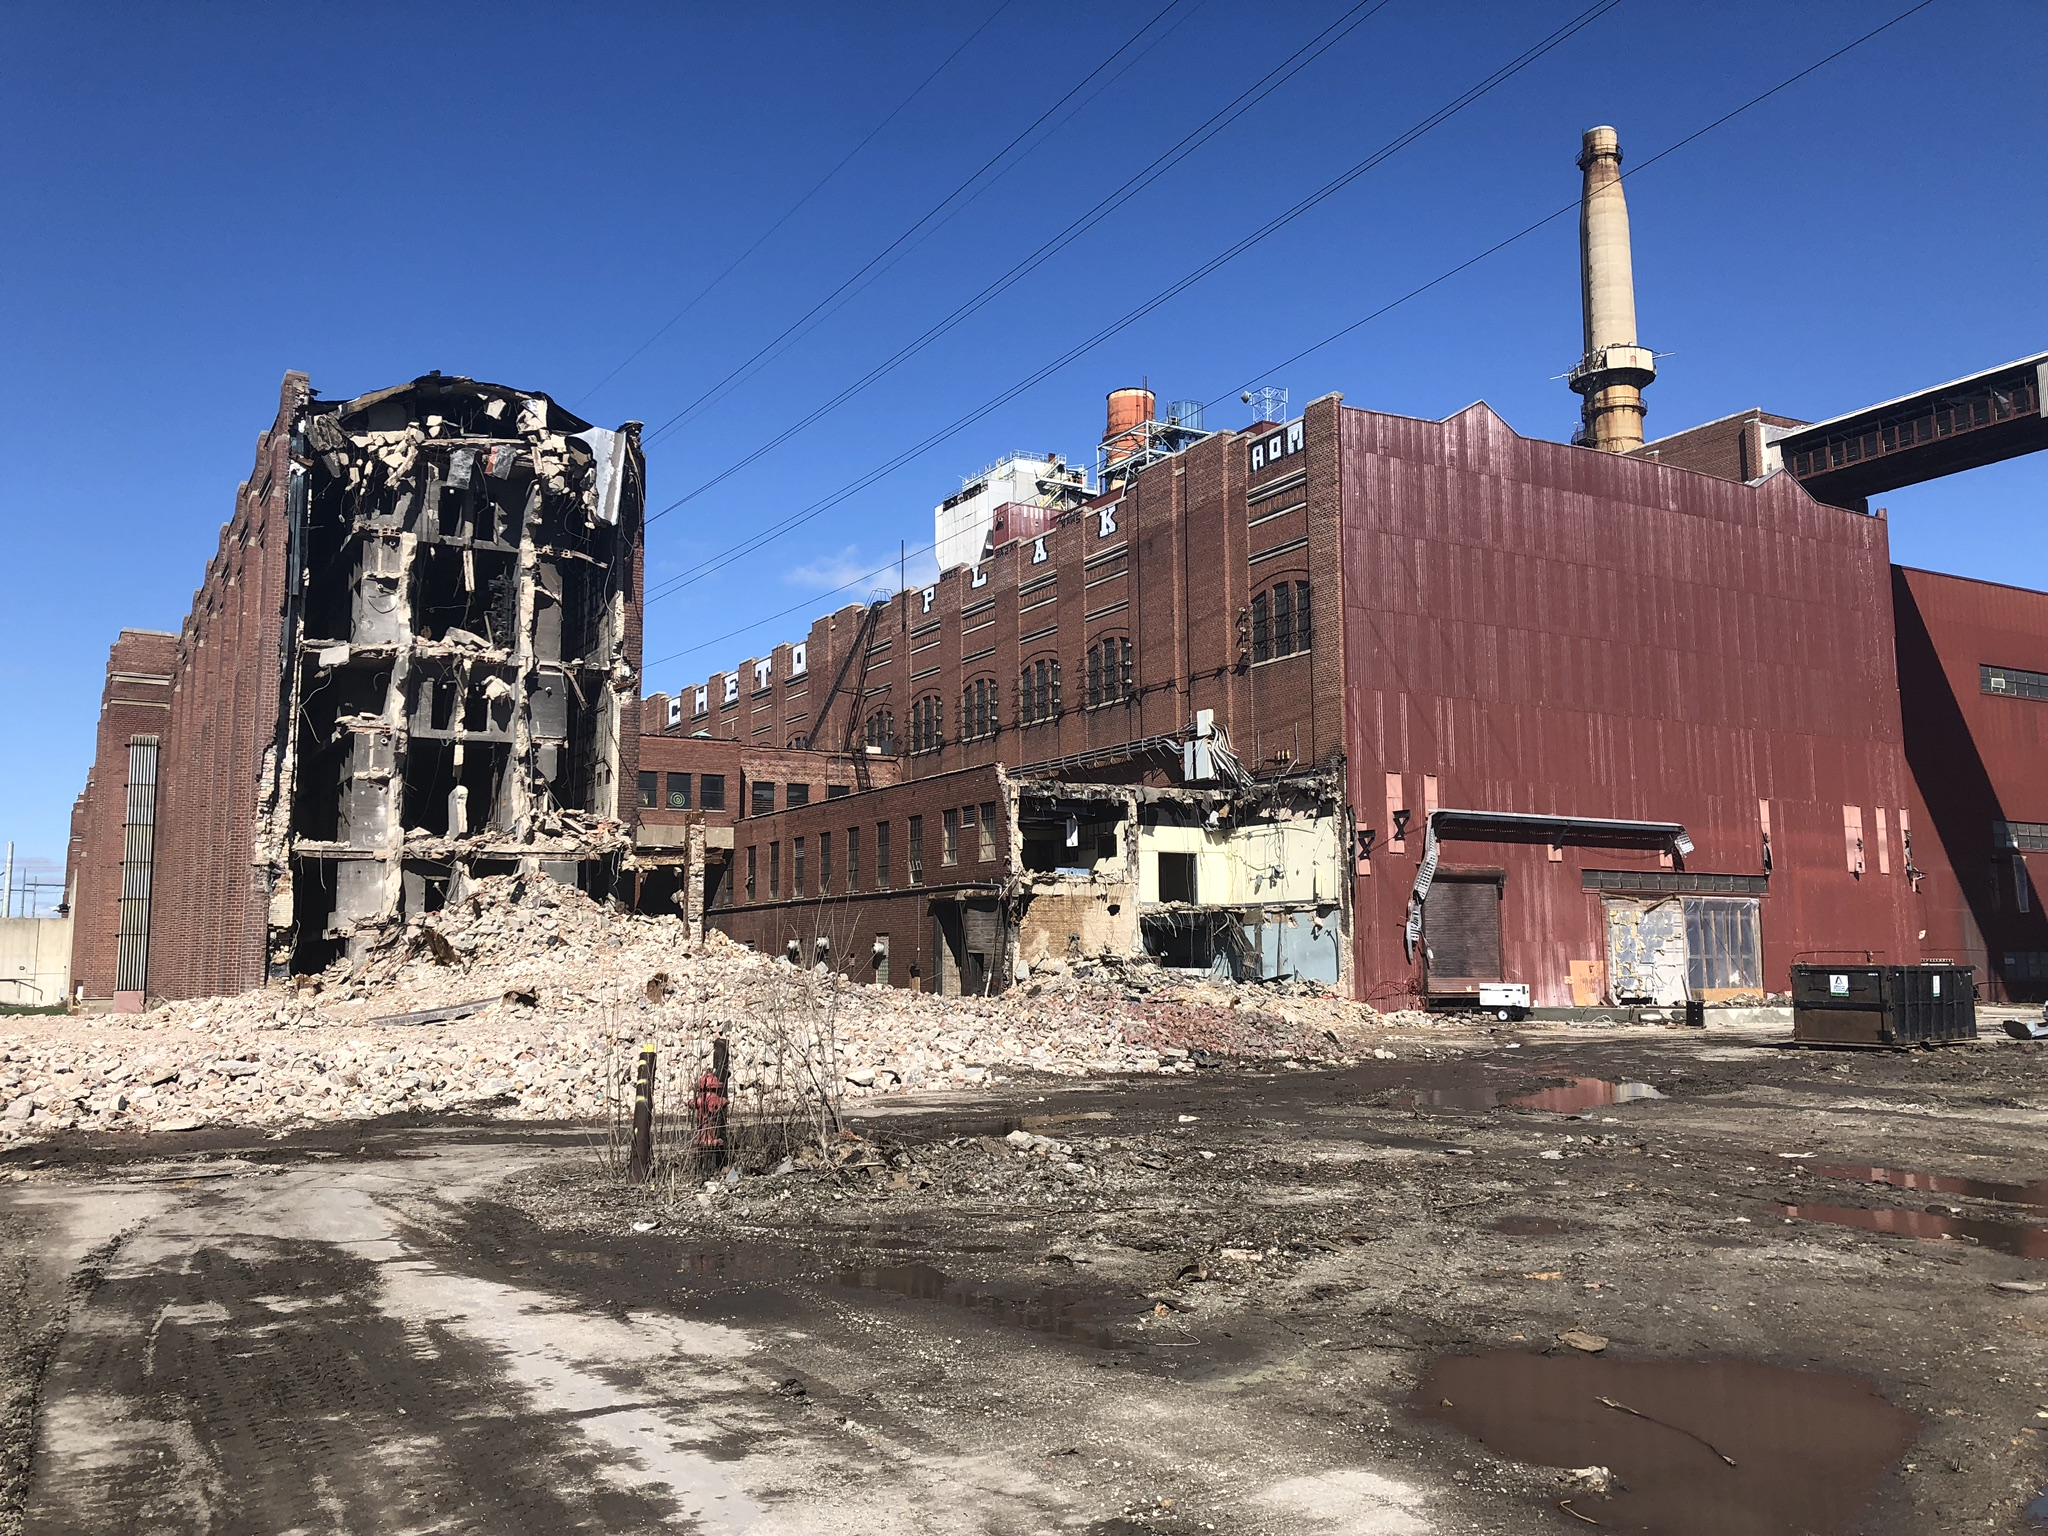 Demolition April 2019